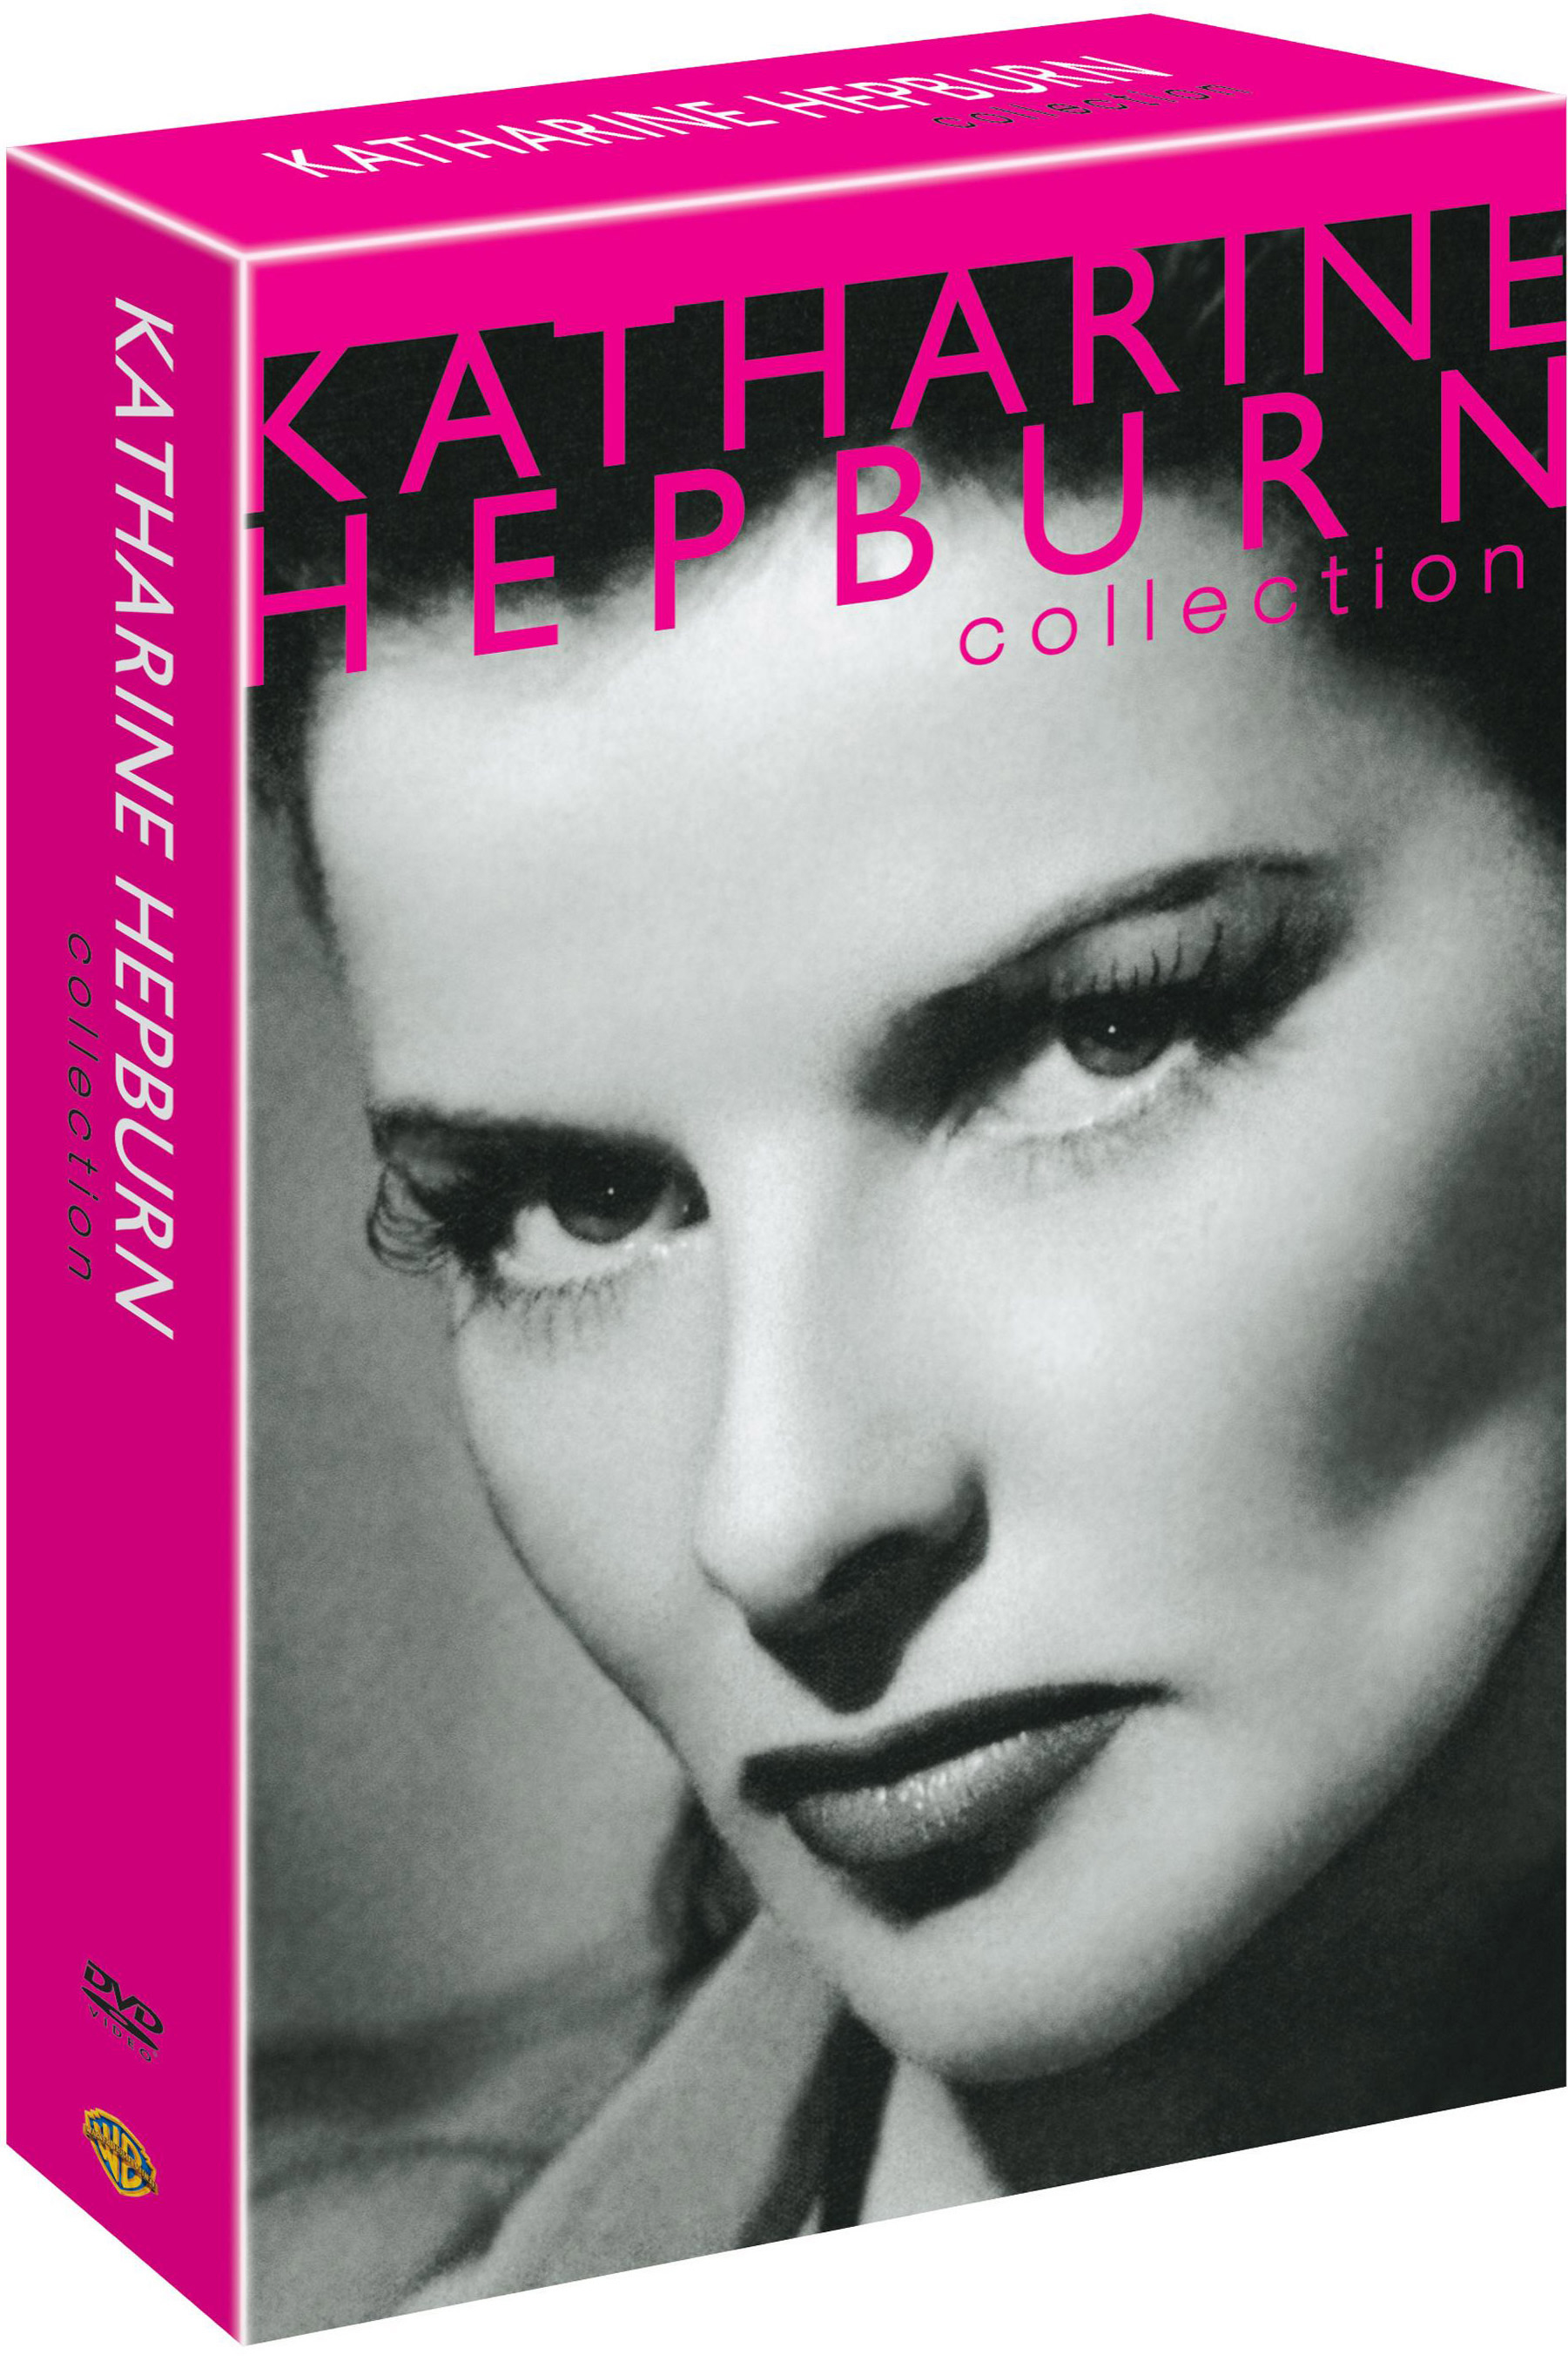 Katharine Hepburn 100th Anniversary Collection (DVD)